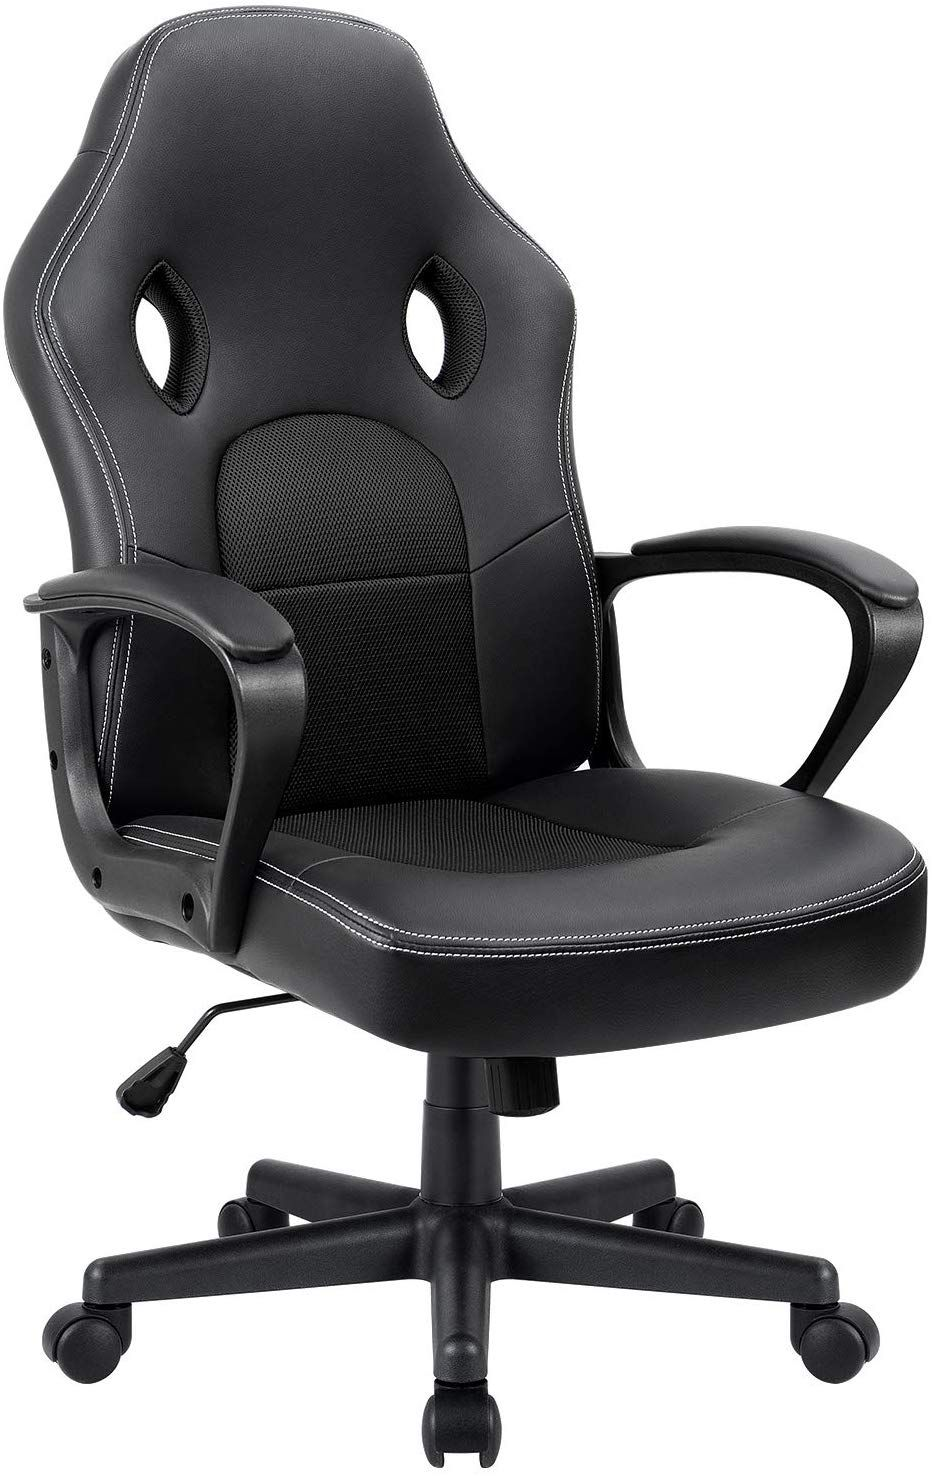 Furmax Office Chair Desk Leather Gaming Chair High Back Ergonomic